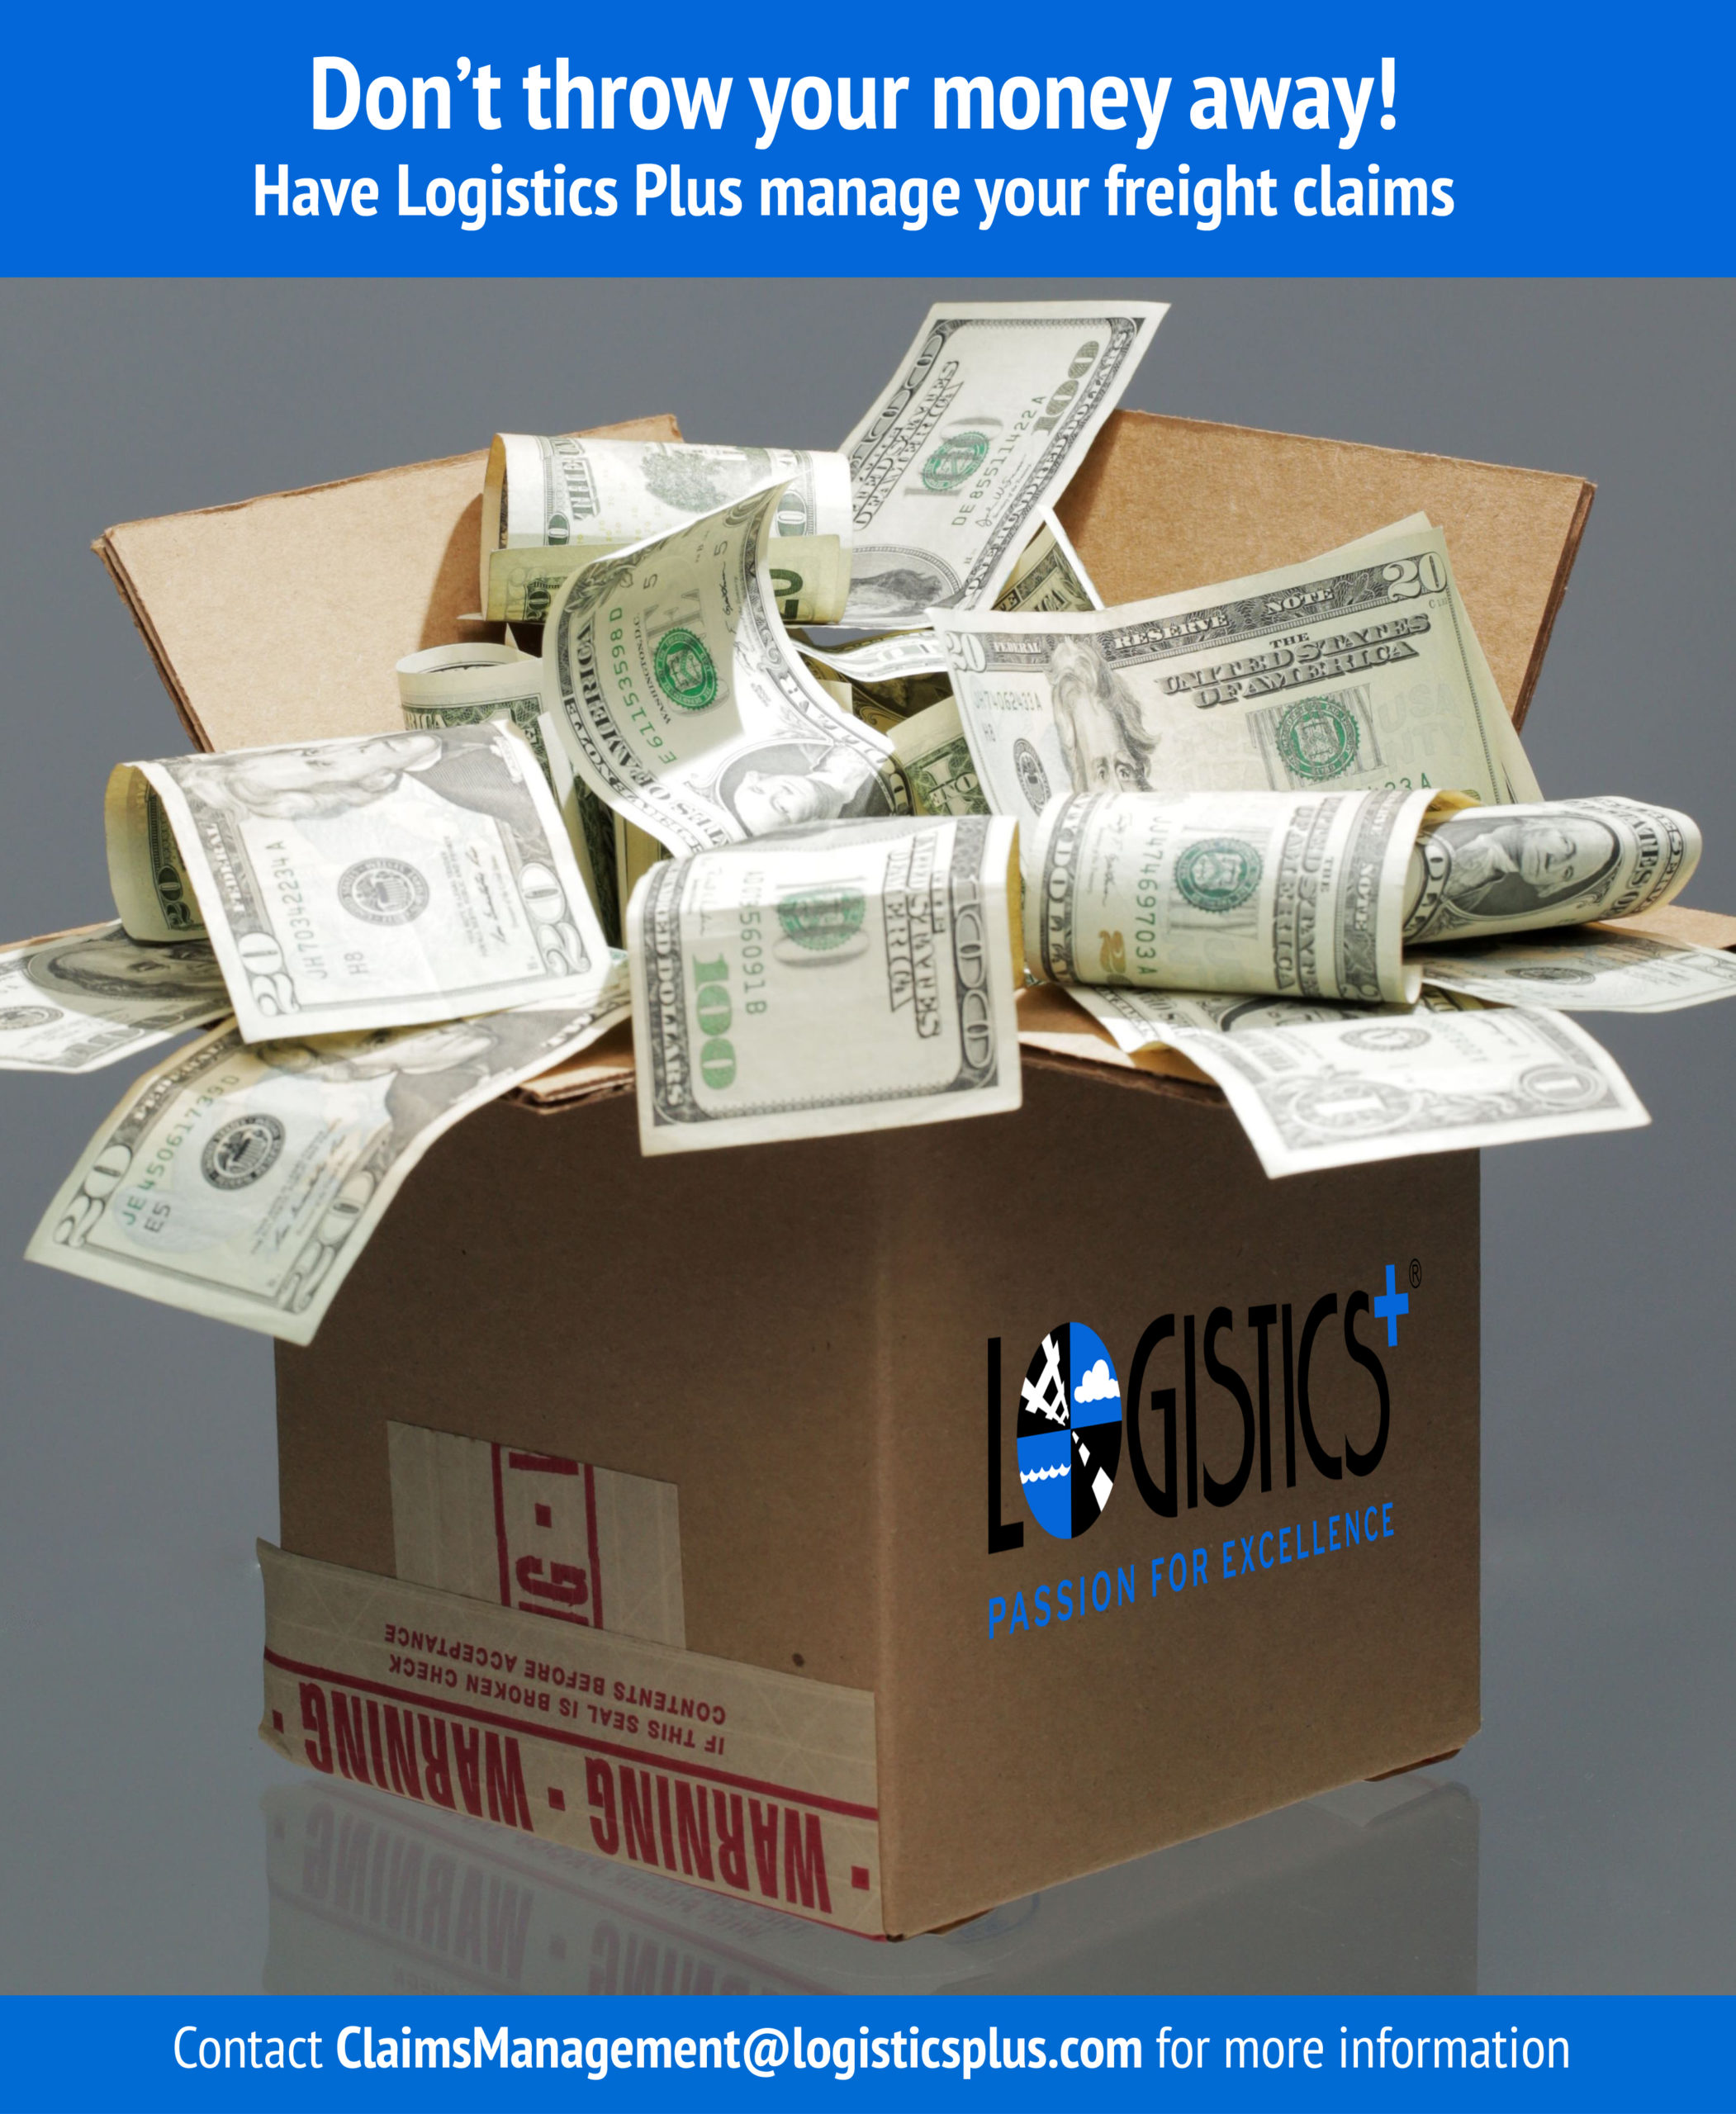 Don't throw money away - Freight Claims Management